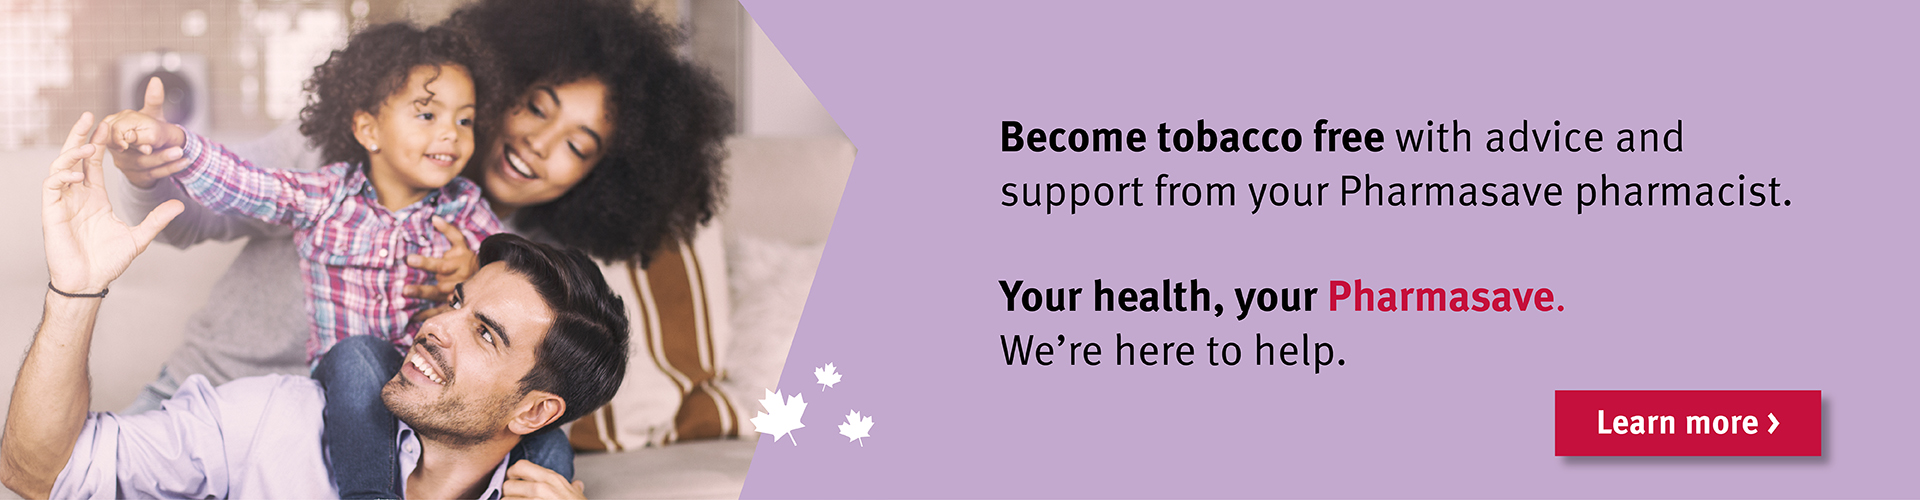 Quit smoking. Speak with your Pharmasave pharmacist to find out how you can become tobacco free.